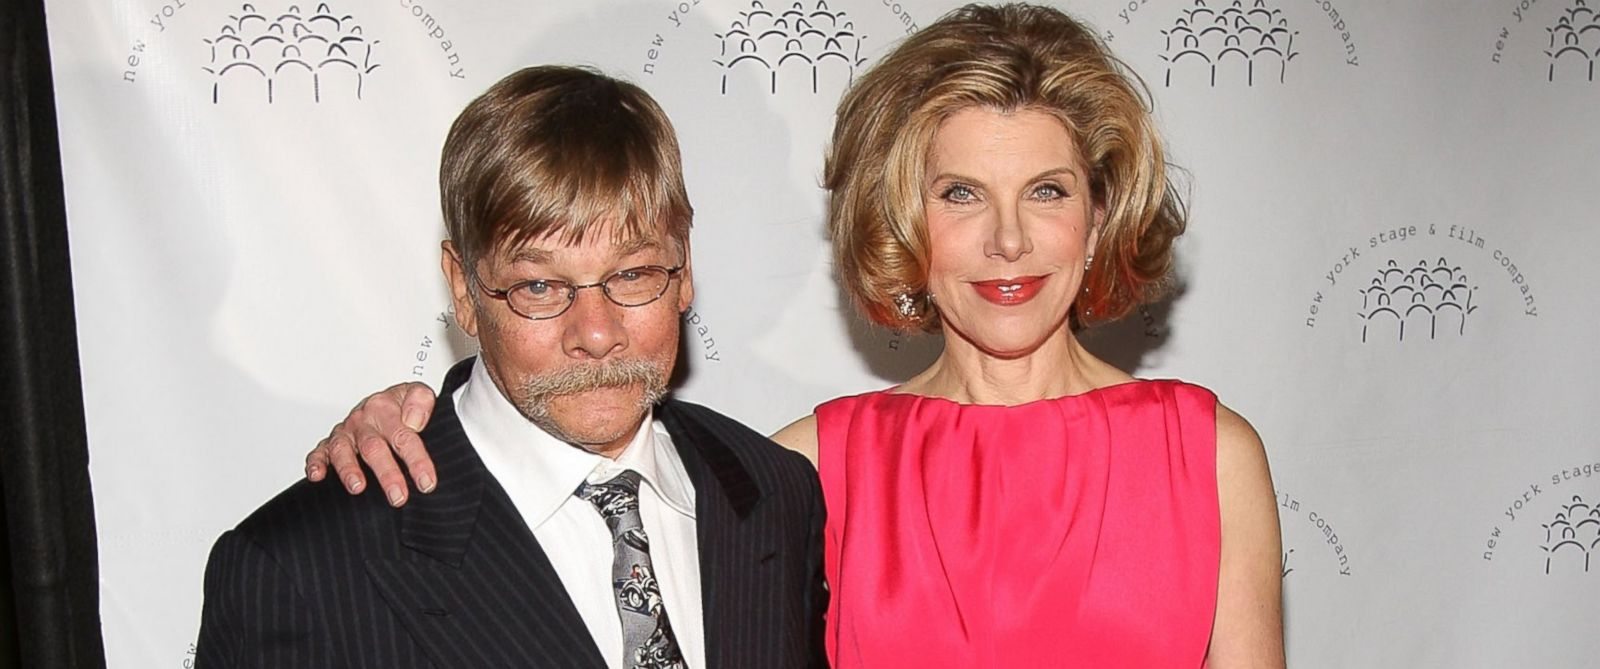 PHOTO: Actor Matthew Cowles and Actress Christine Baranski attends the New York Stage and Films annual gala at The Plaza Hotel in this Dec. 13, 2009, file photo.